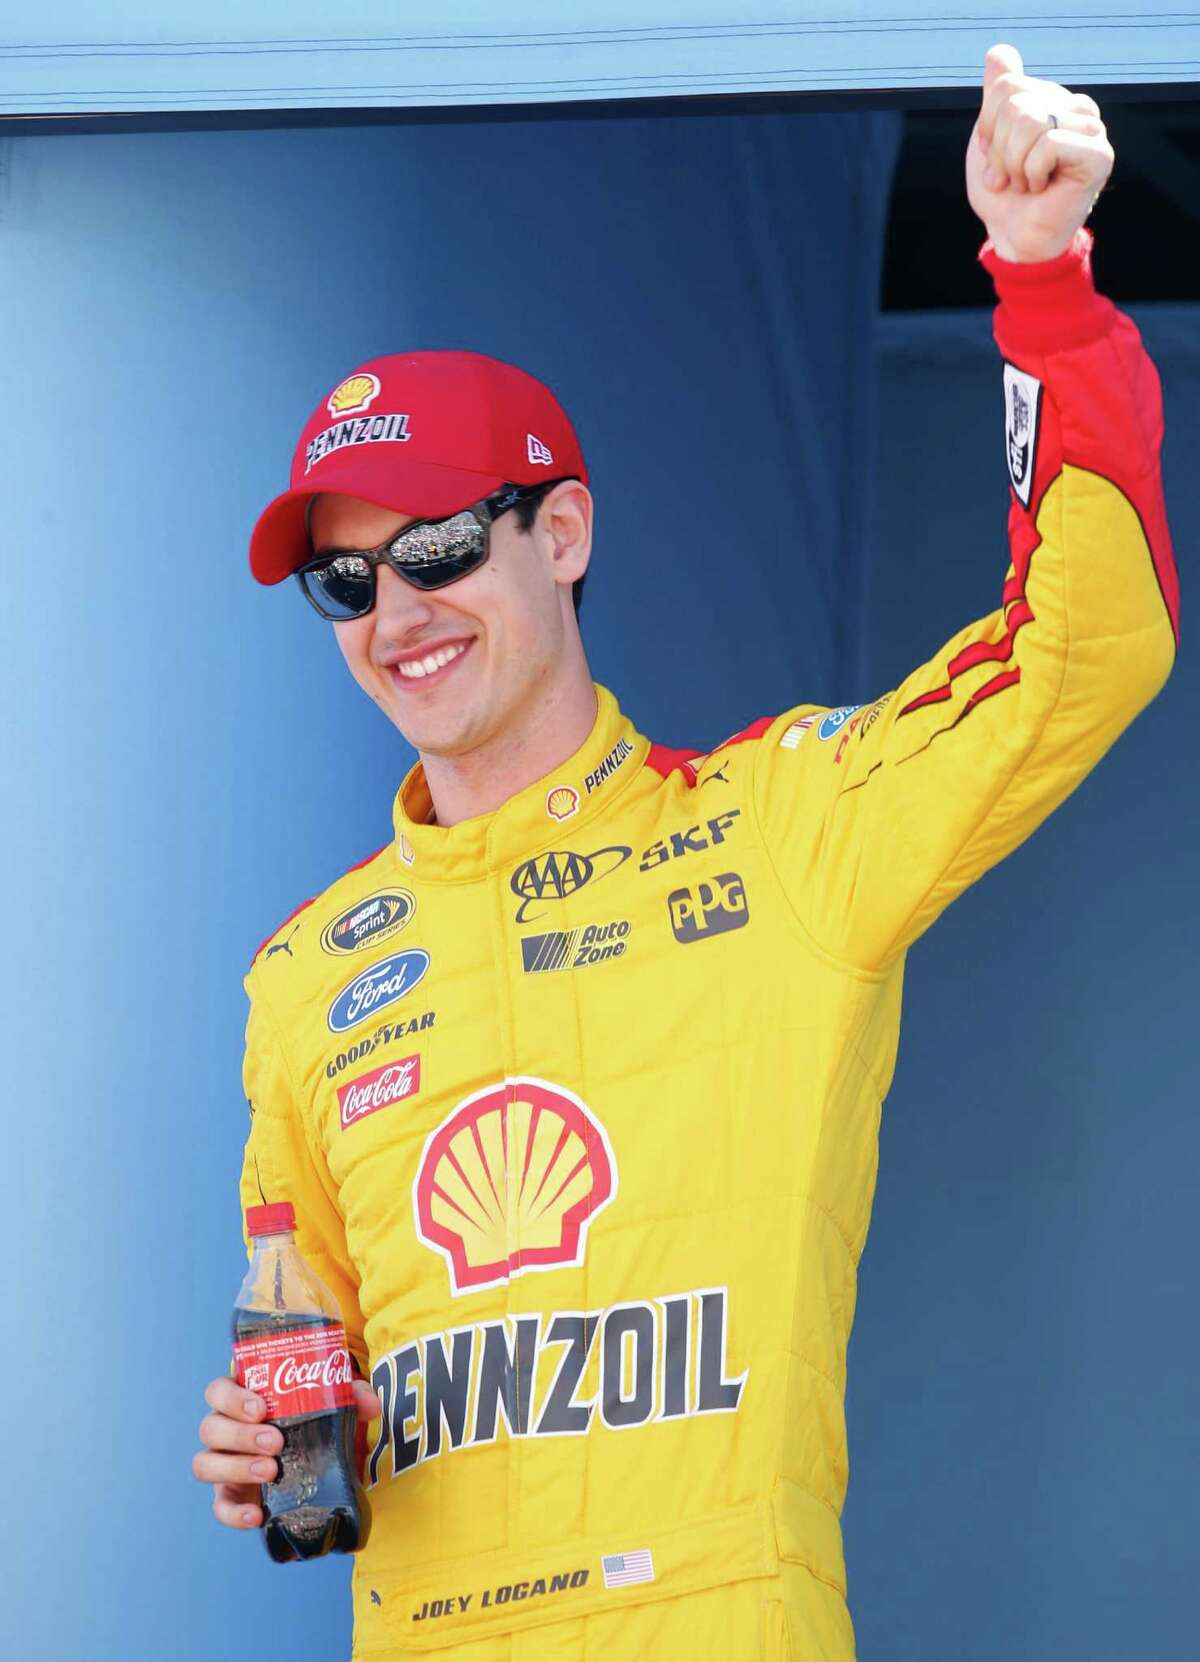 Joey Logano waves to the fans before a NASCAR Sprint Cup Series auto race on Sunday, March 15, 2015, in Avondale, Ariz. (AP Photo/Rick Scuteri) ORG XMIT: AZRS107